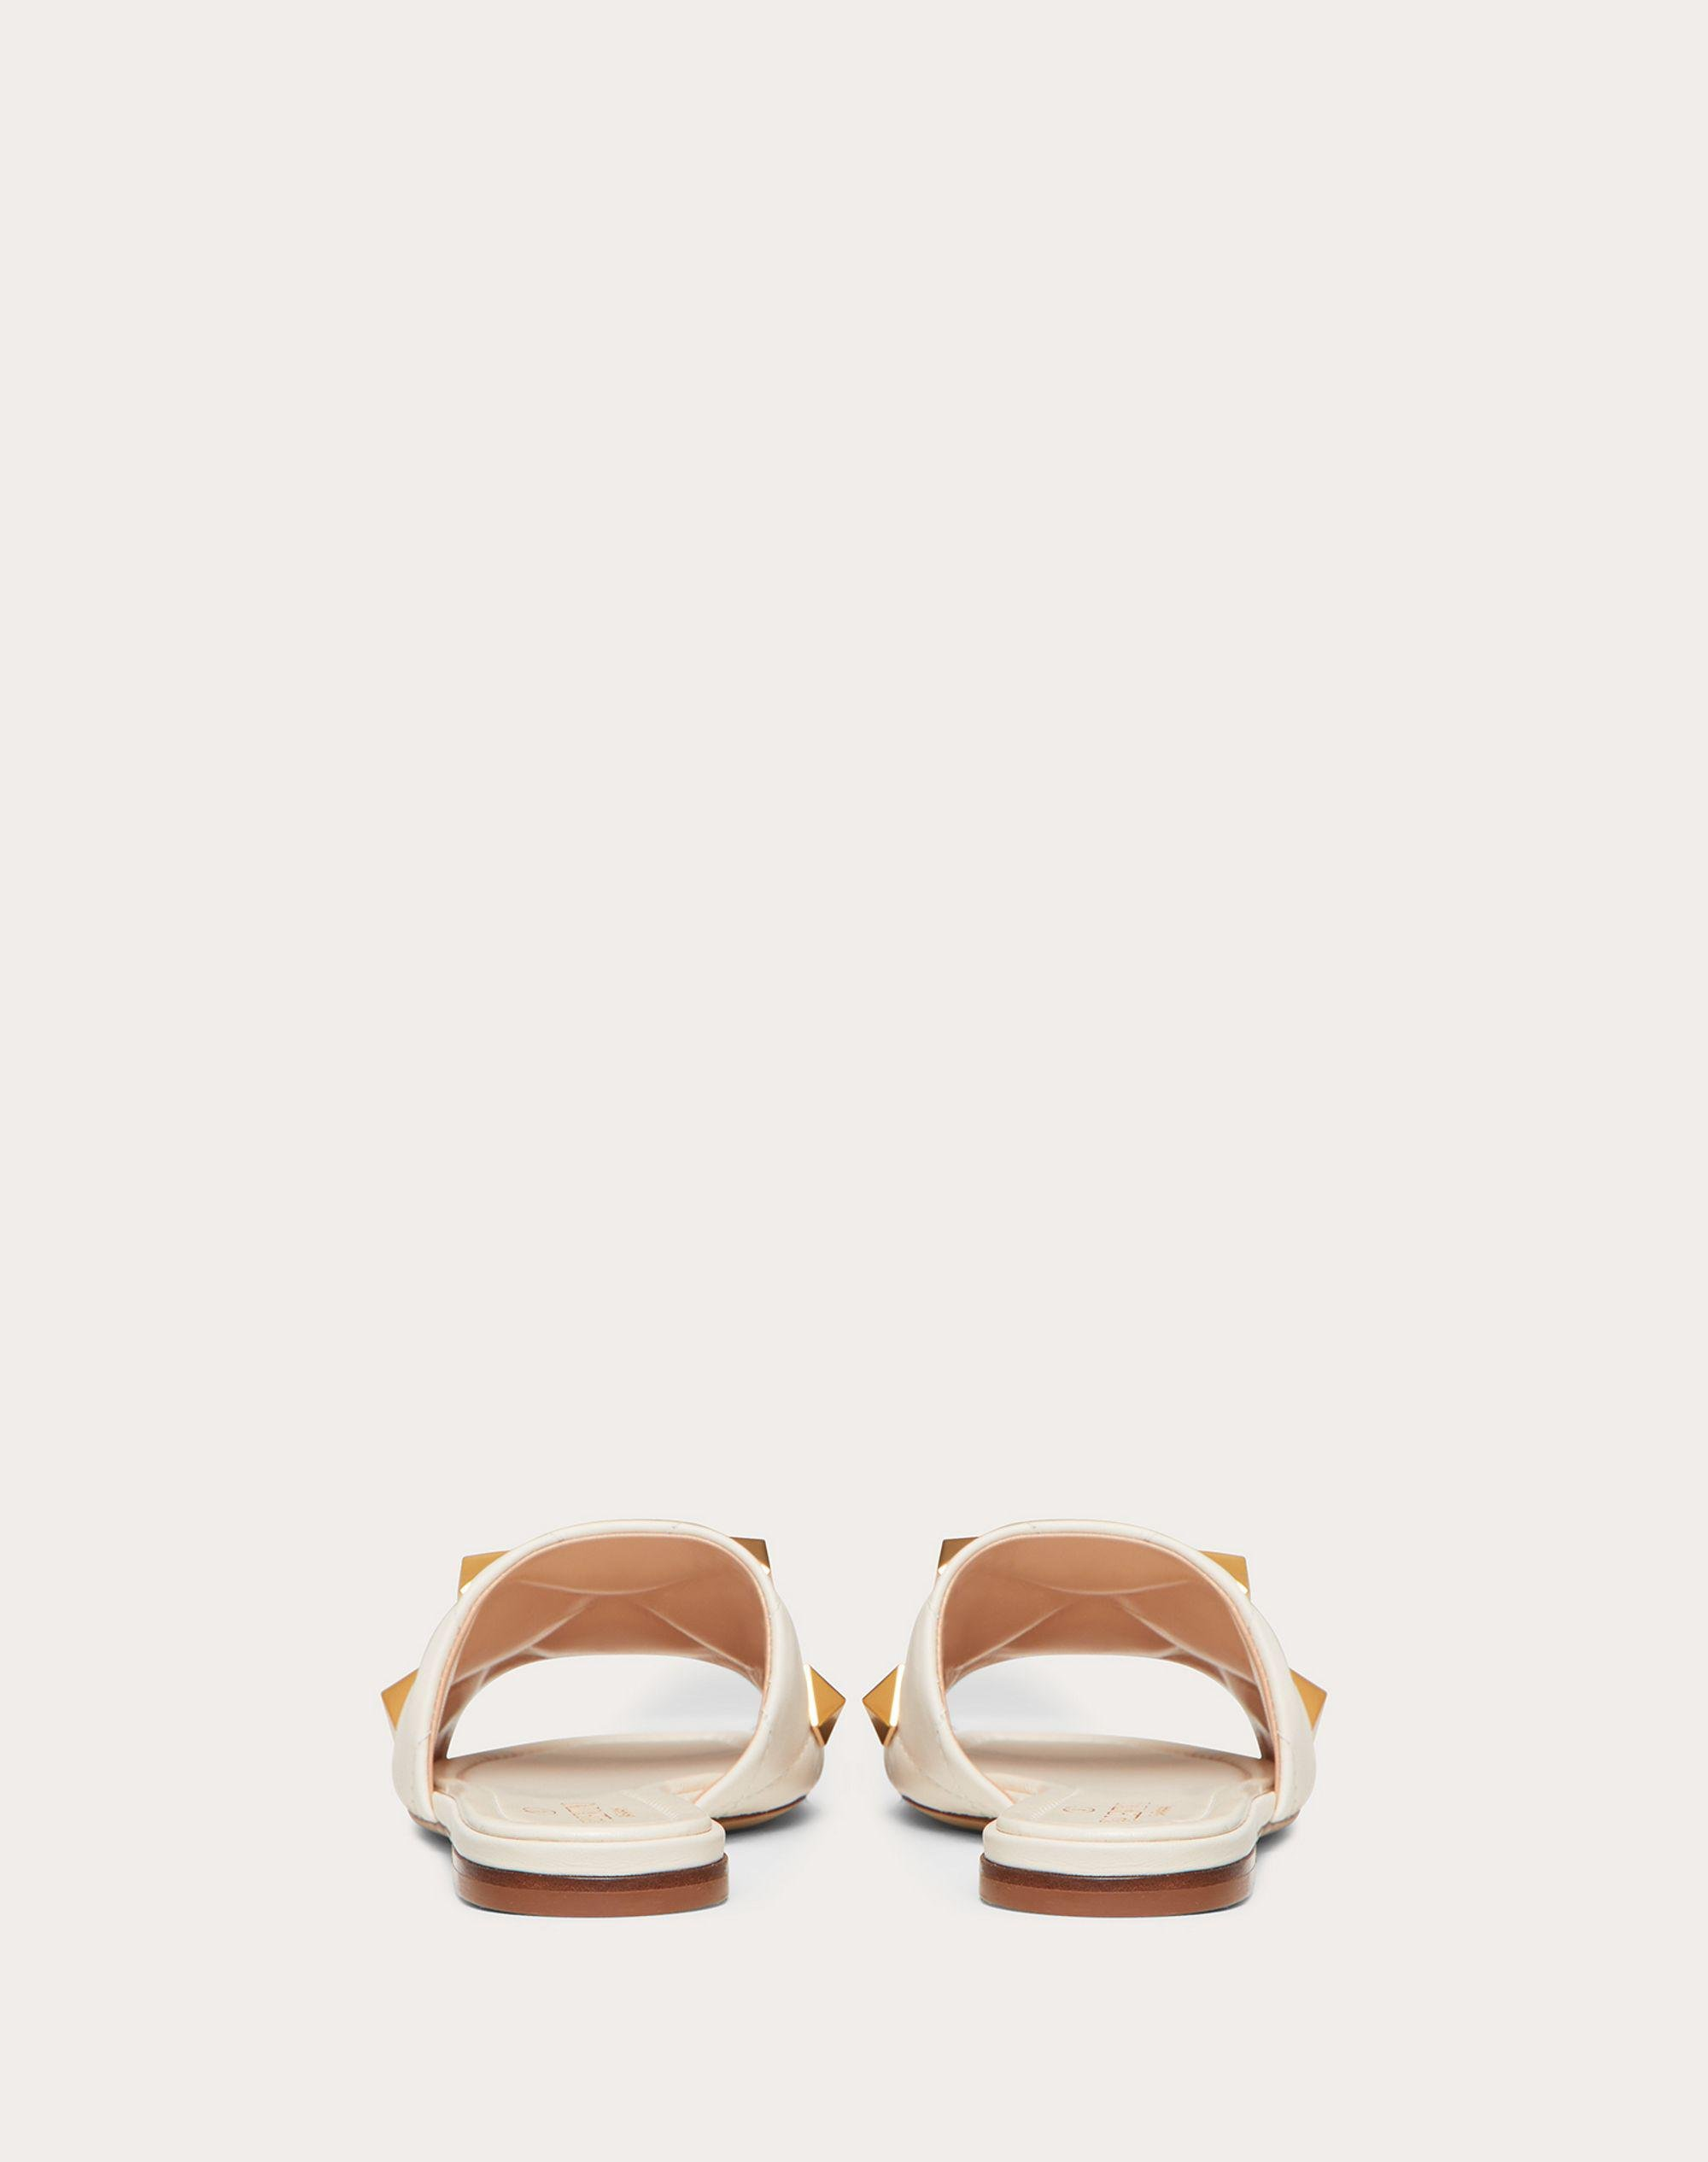 ROMAN STUD FLAT SLIDE SANDAL IN QUILTED NAPPA 2